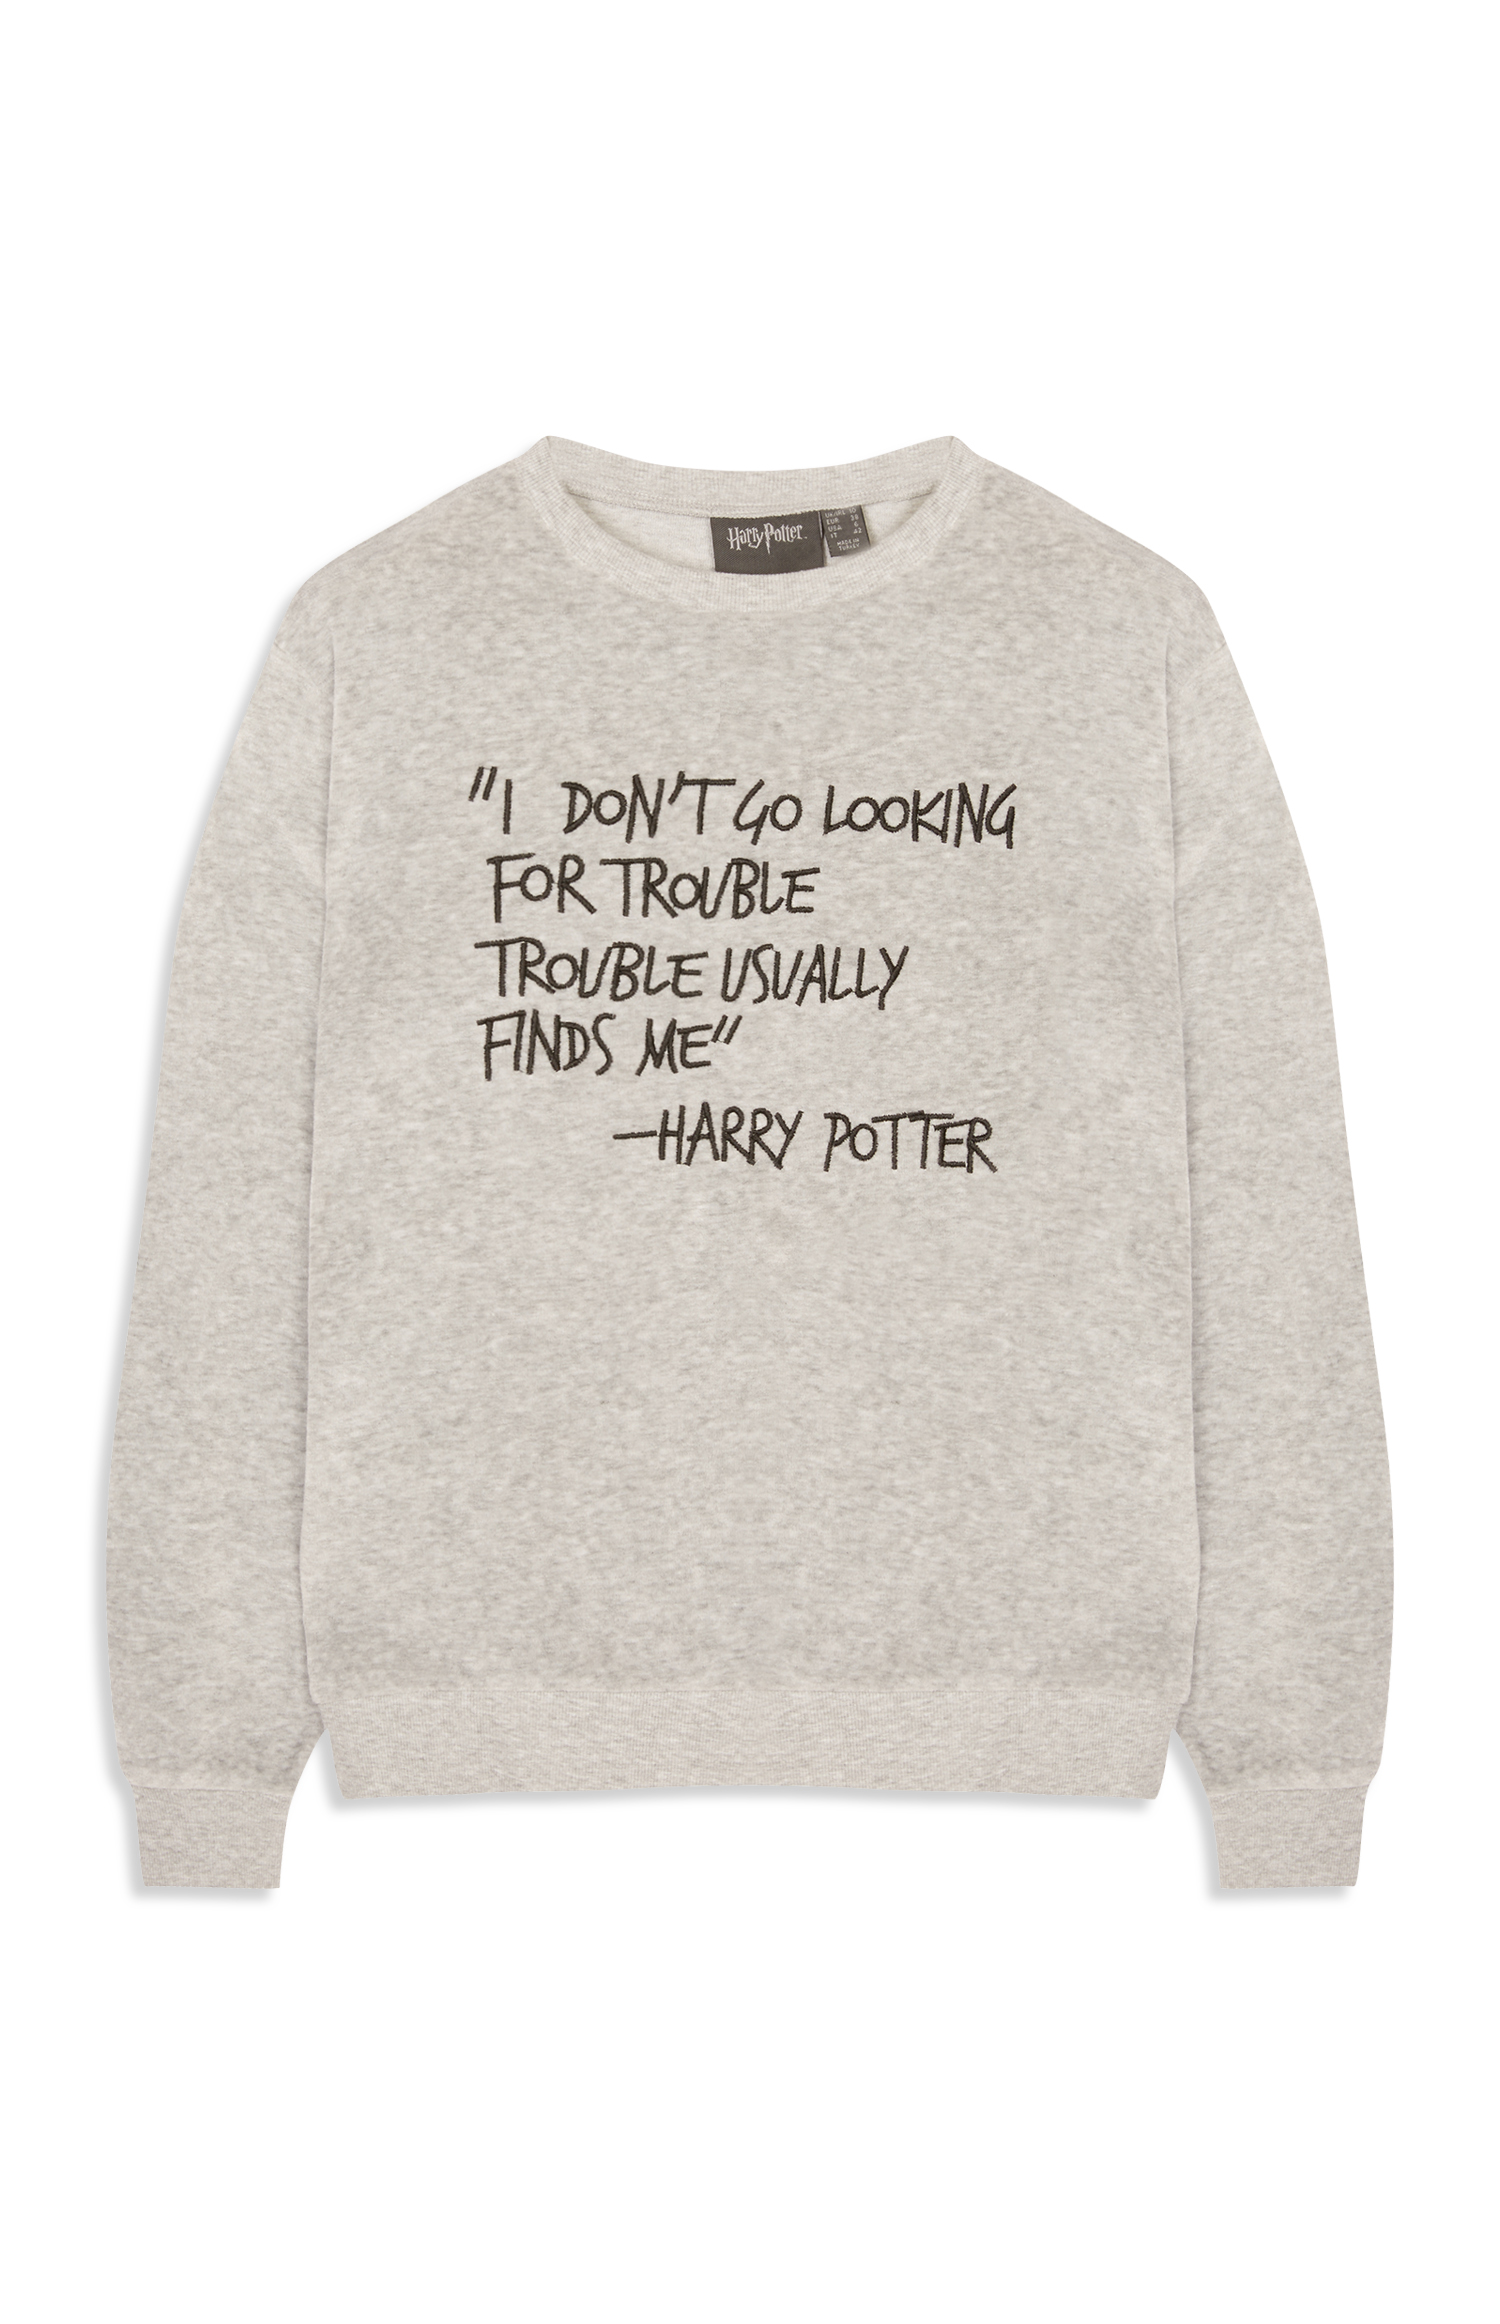 Primark Has Launched A Harry Potter Collection And It Is